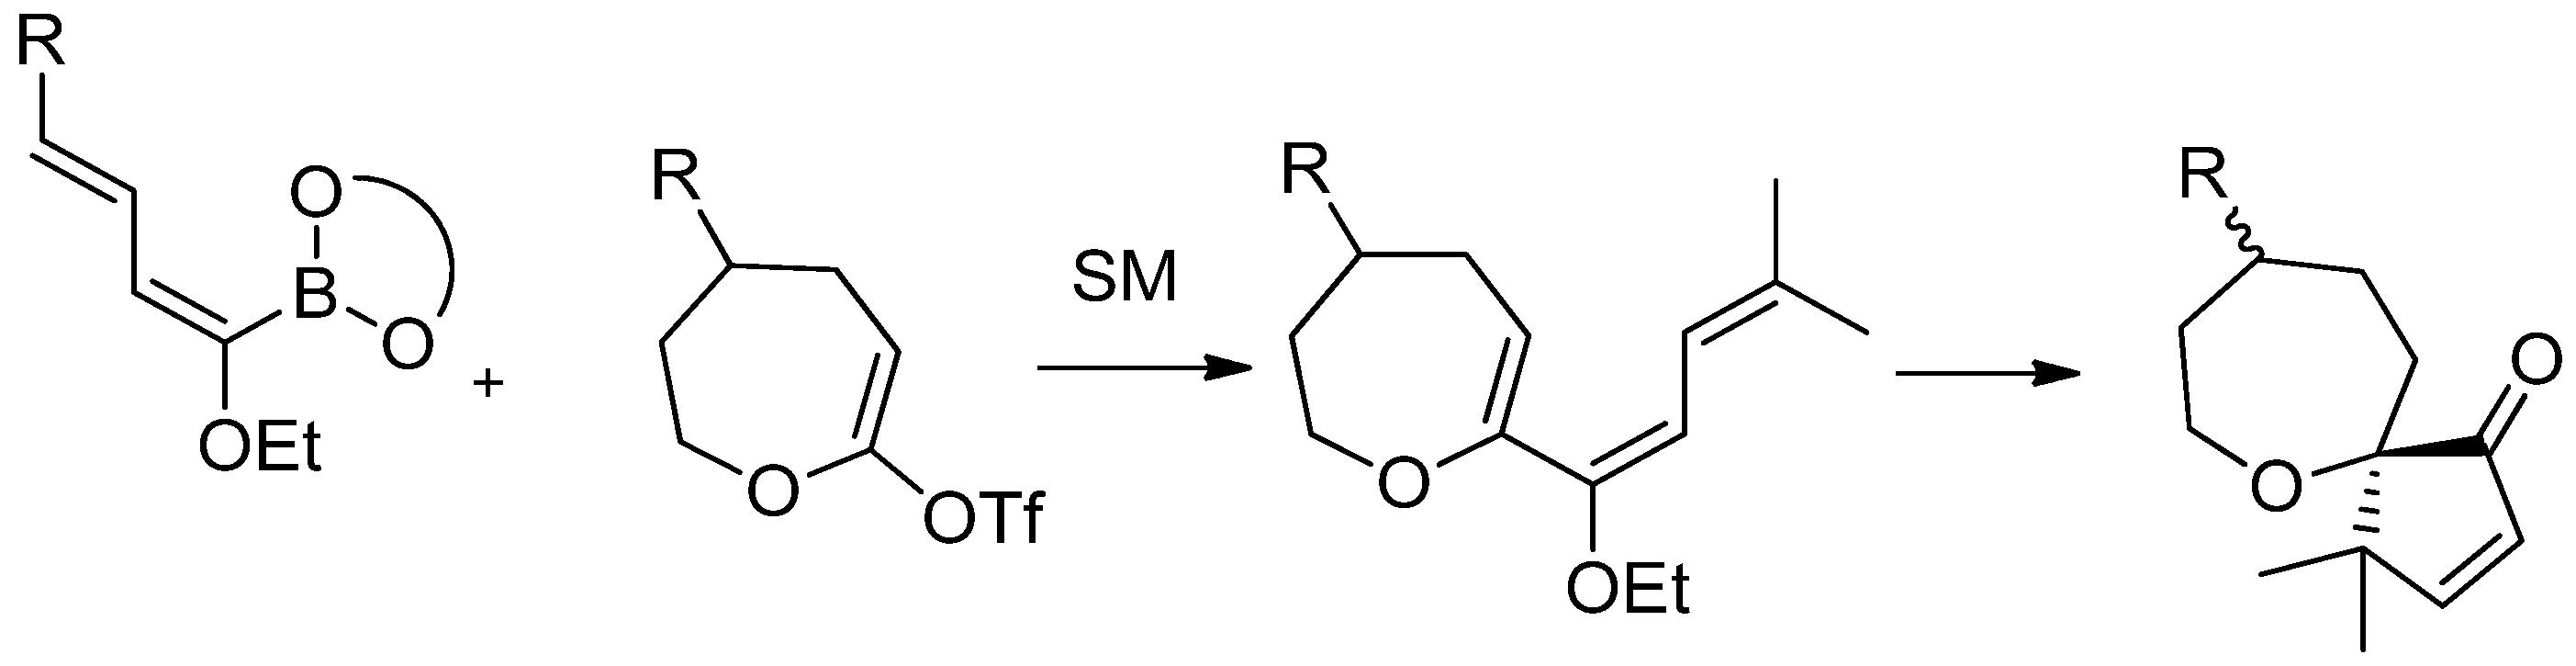 Molecules 18 01188 sch024